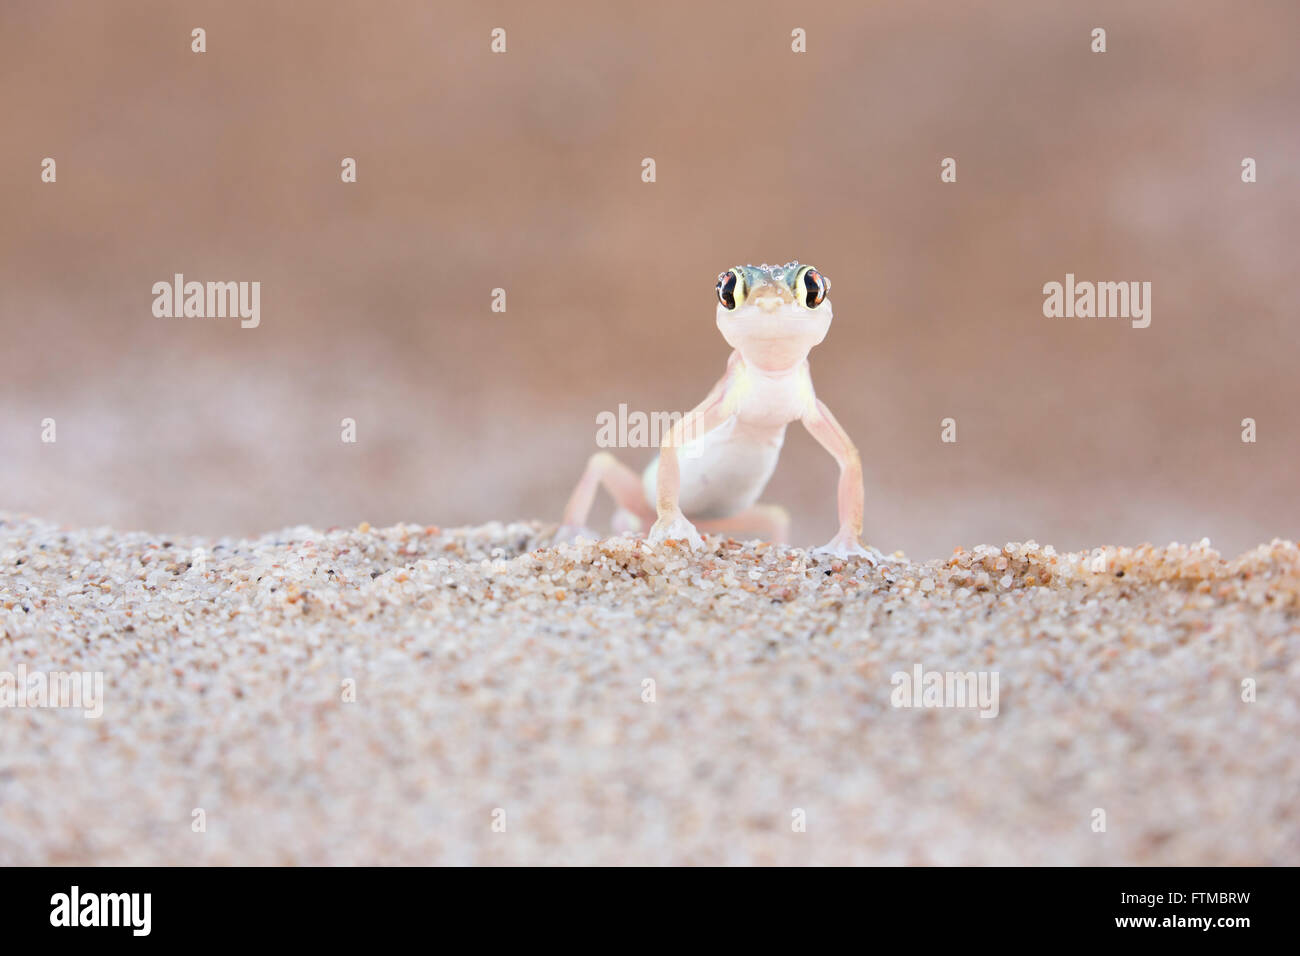 Palmato Gecko standing on top of a sand dune and looking at the camera - Stock Image